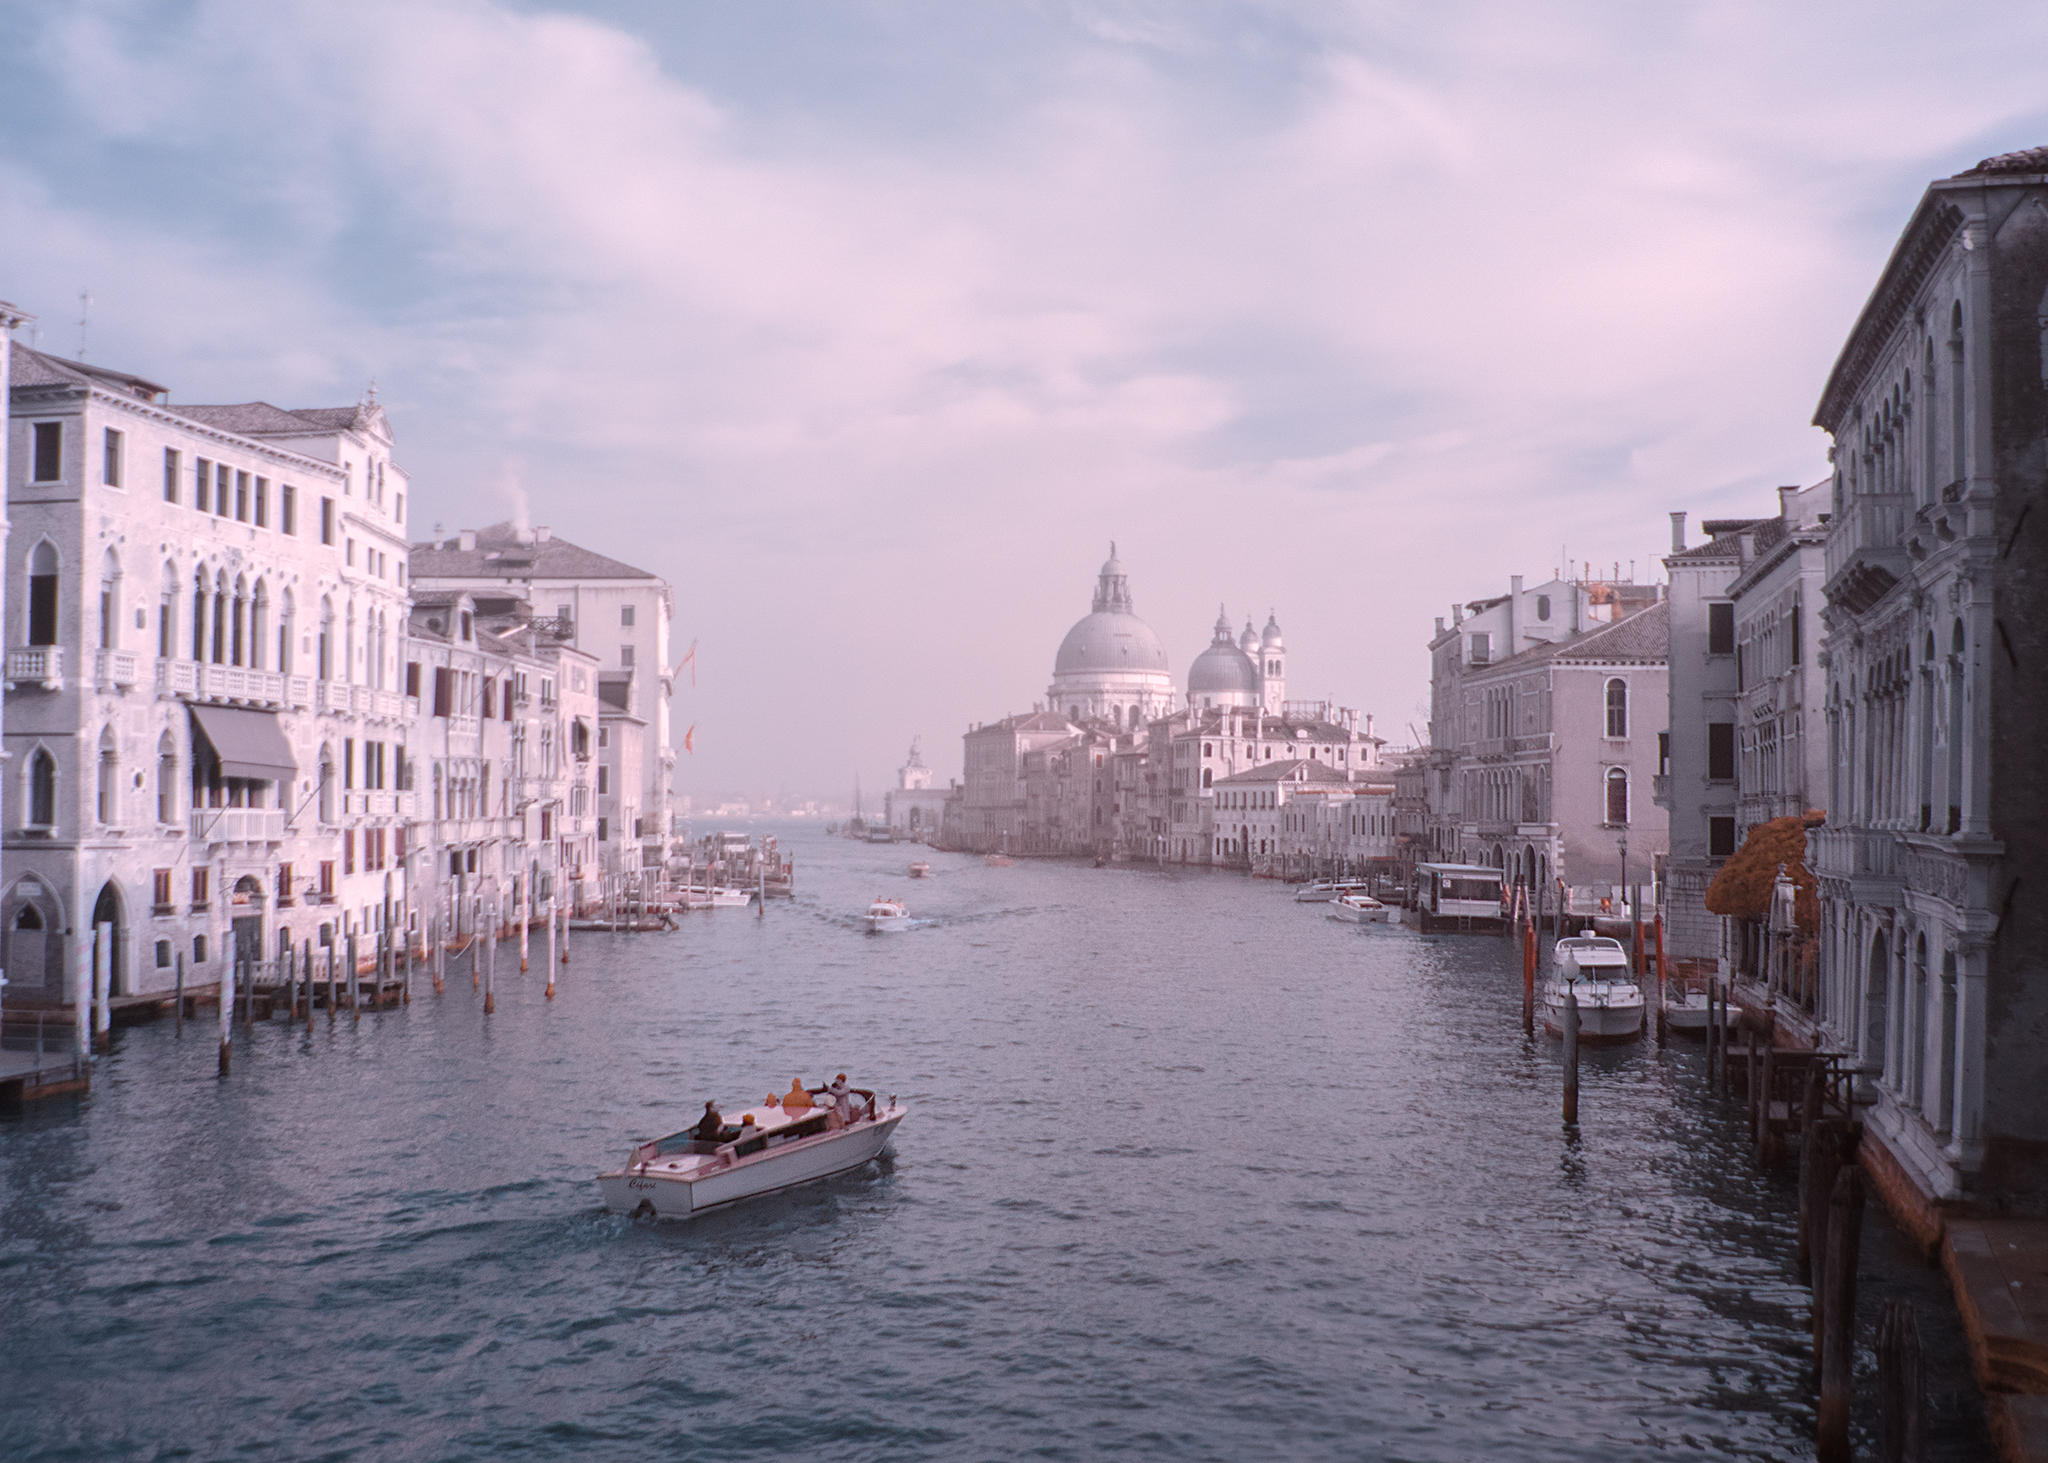 View along the canals